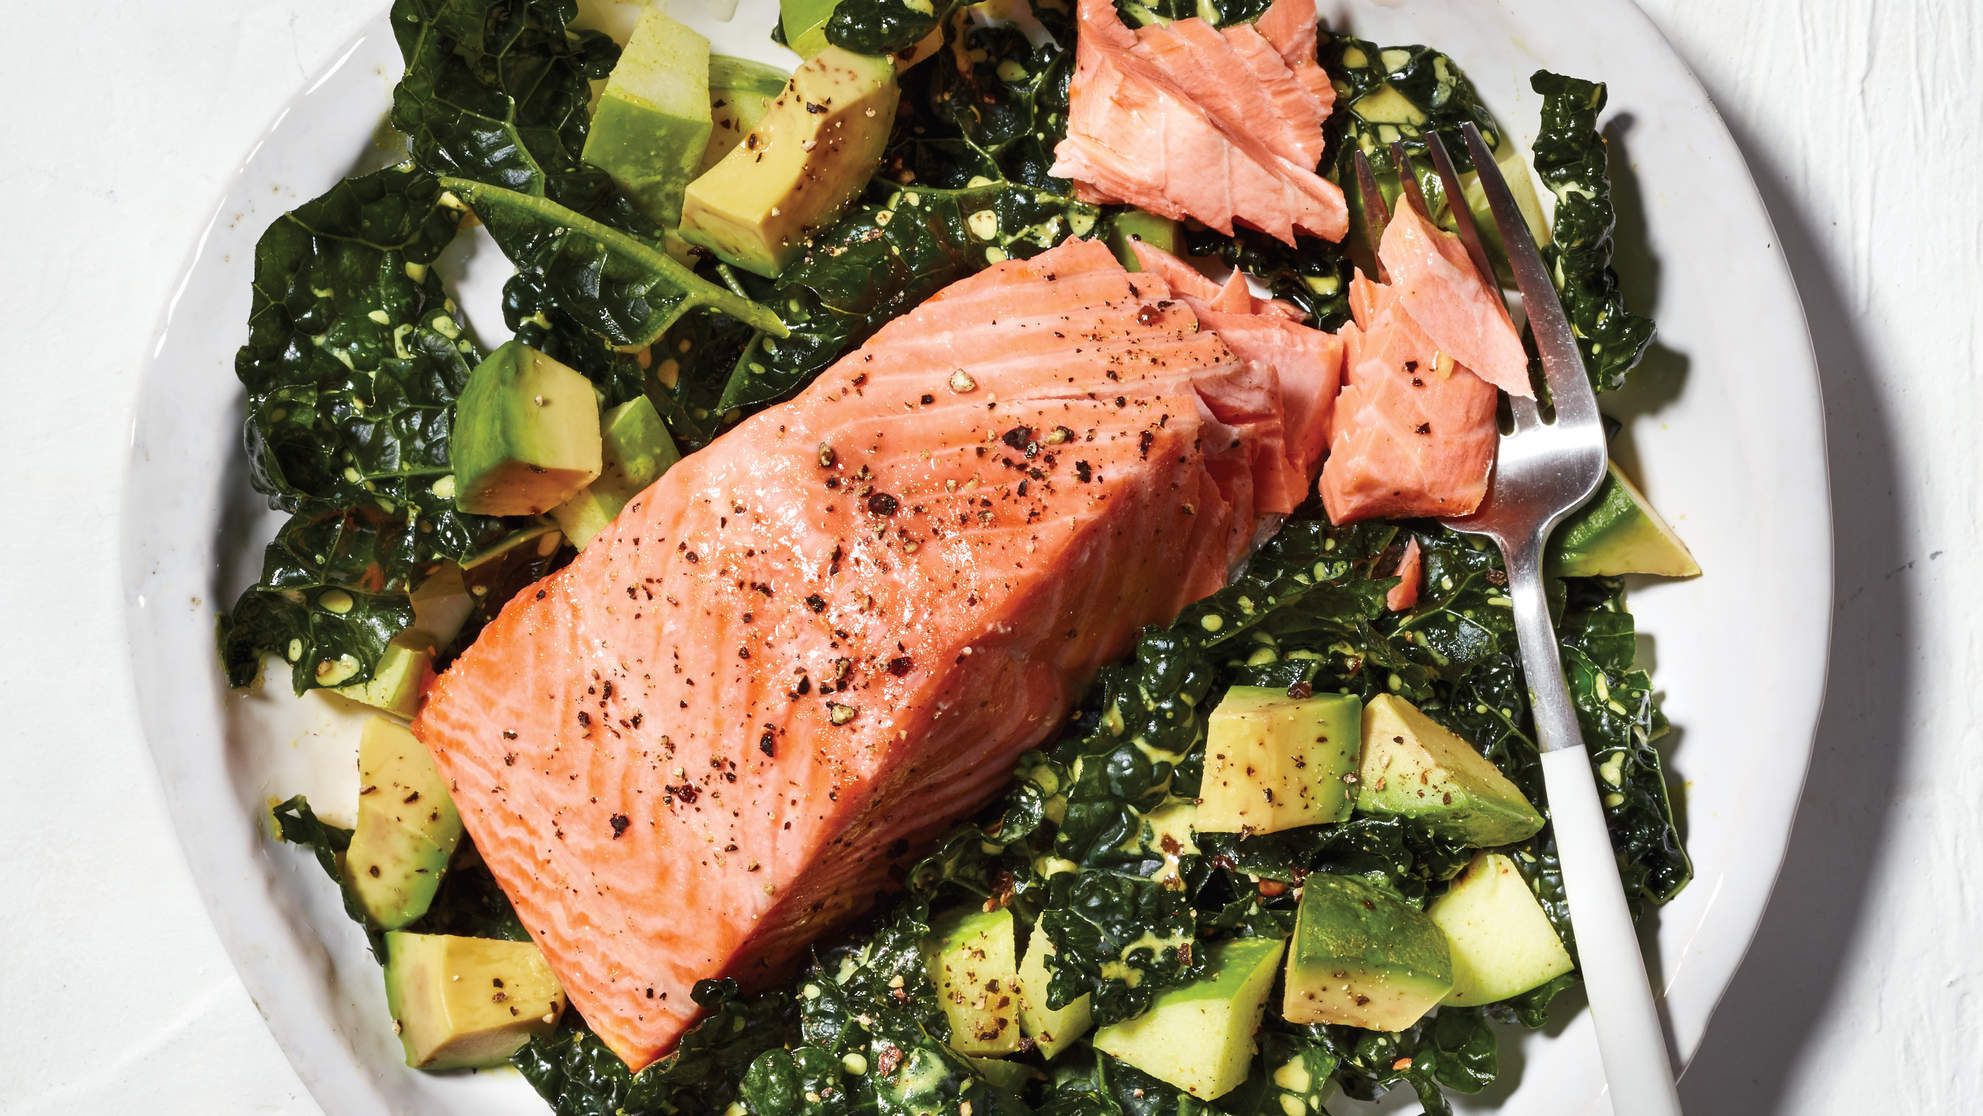 Kale Salad With Poached Salmon, Apple, and Avocado Recipe - Health